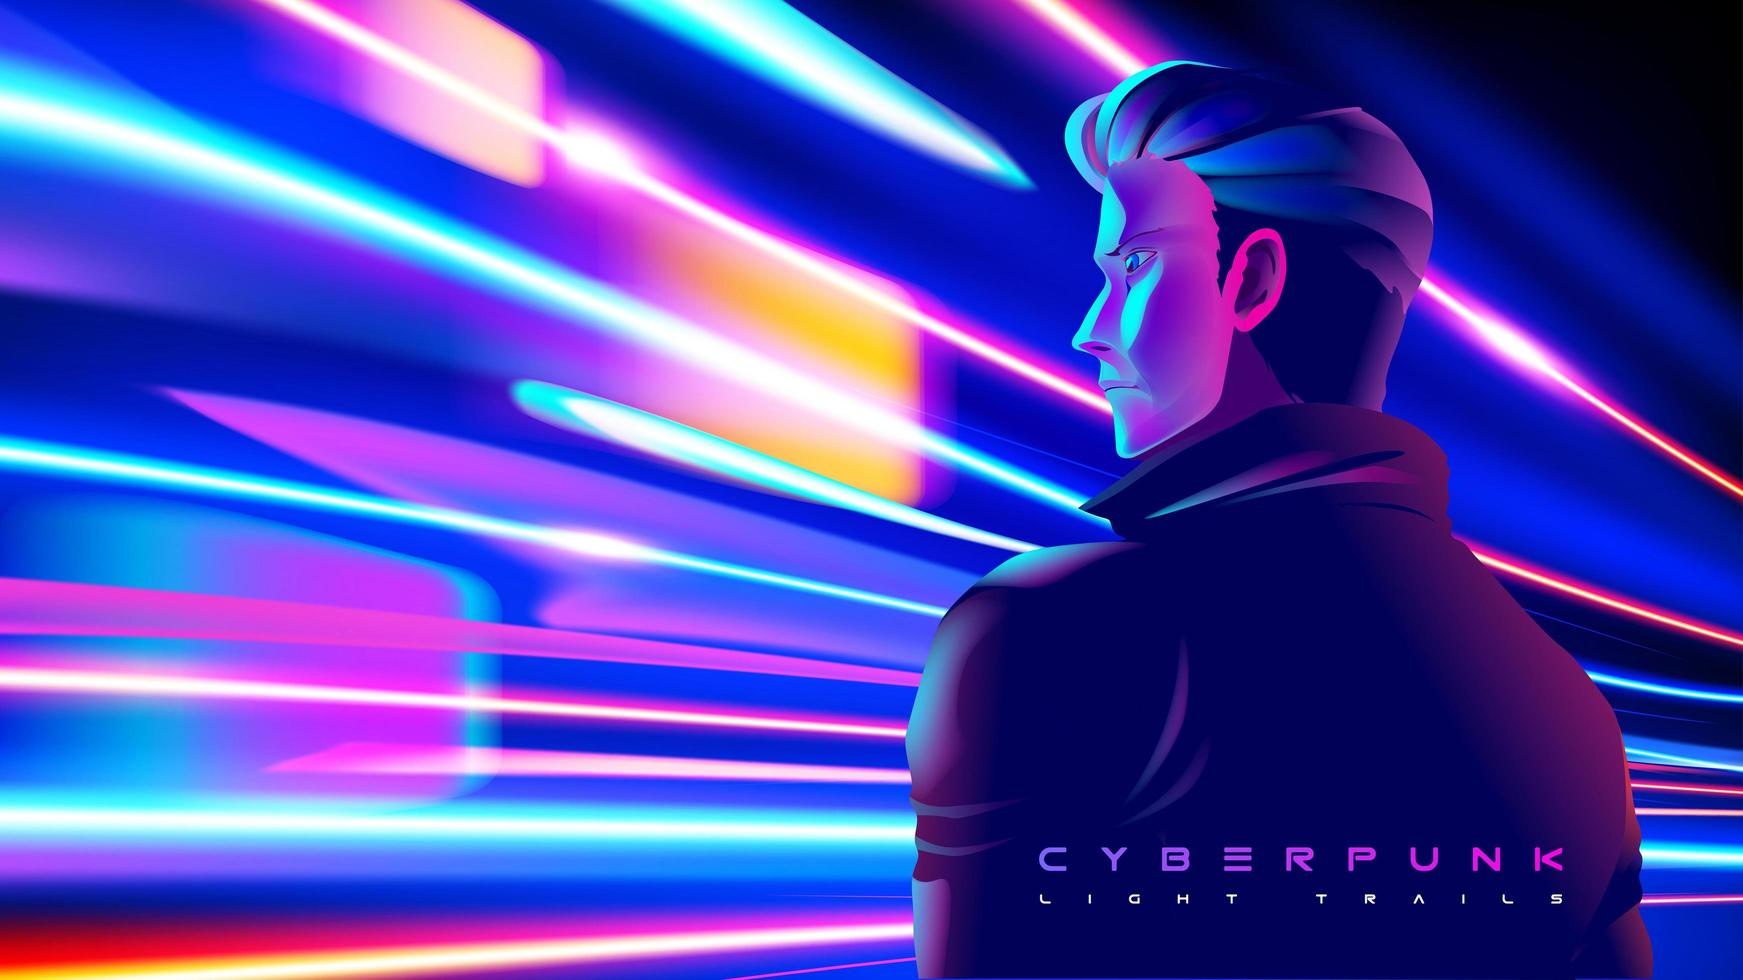 Cyberpunk Man Having One Moment in Light Speed vector